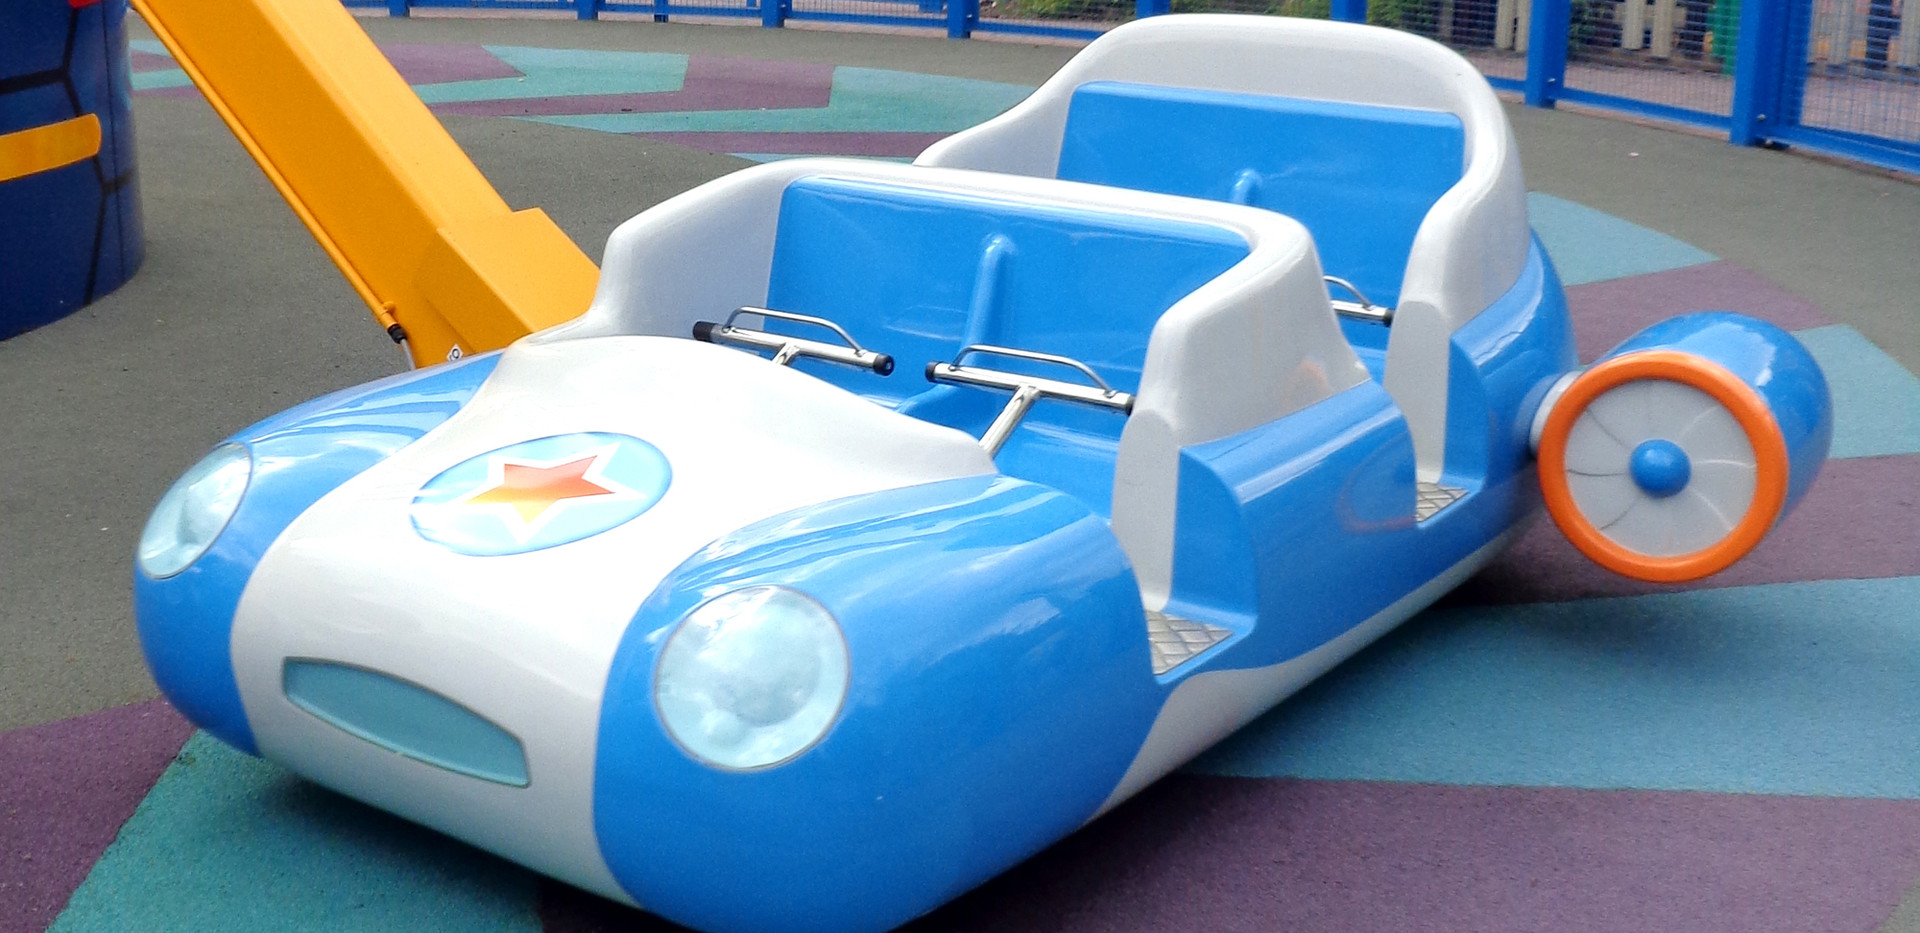 Go Jetters Ride Vehicle.jpg